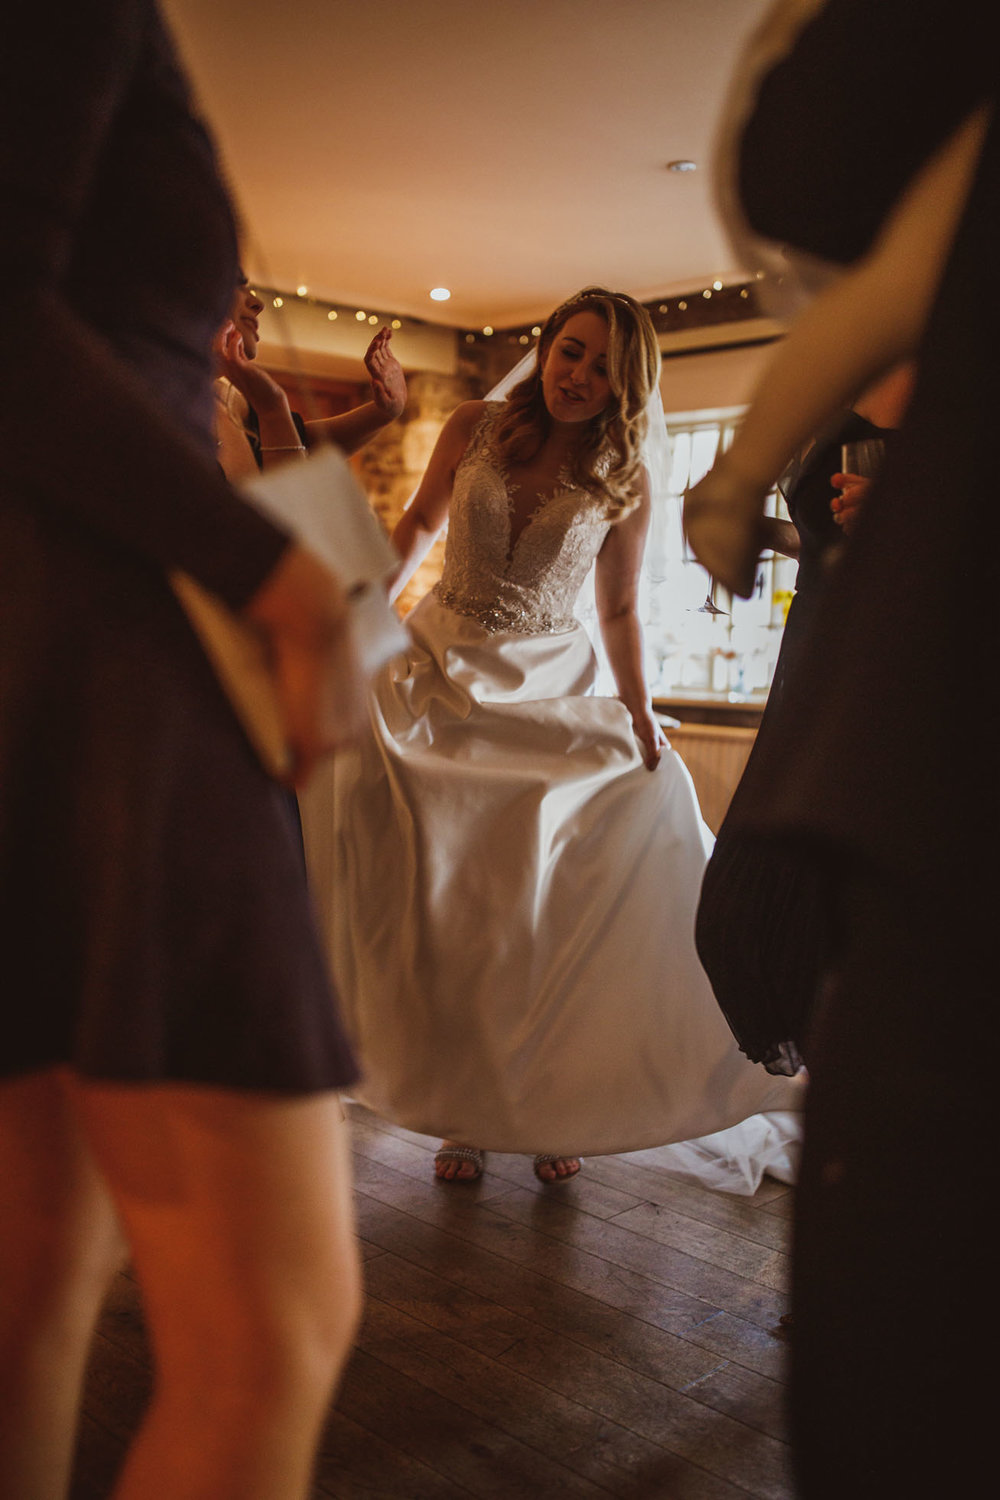 black_swan_helmsley_wedding_photographer-94.jpg